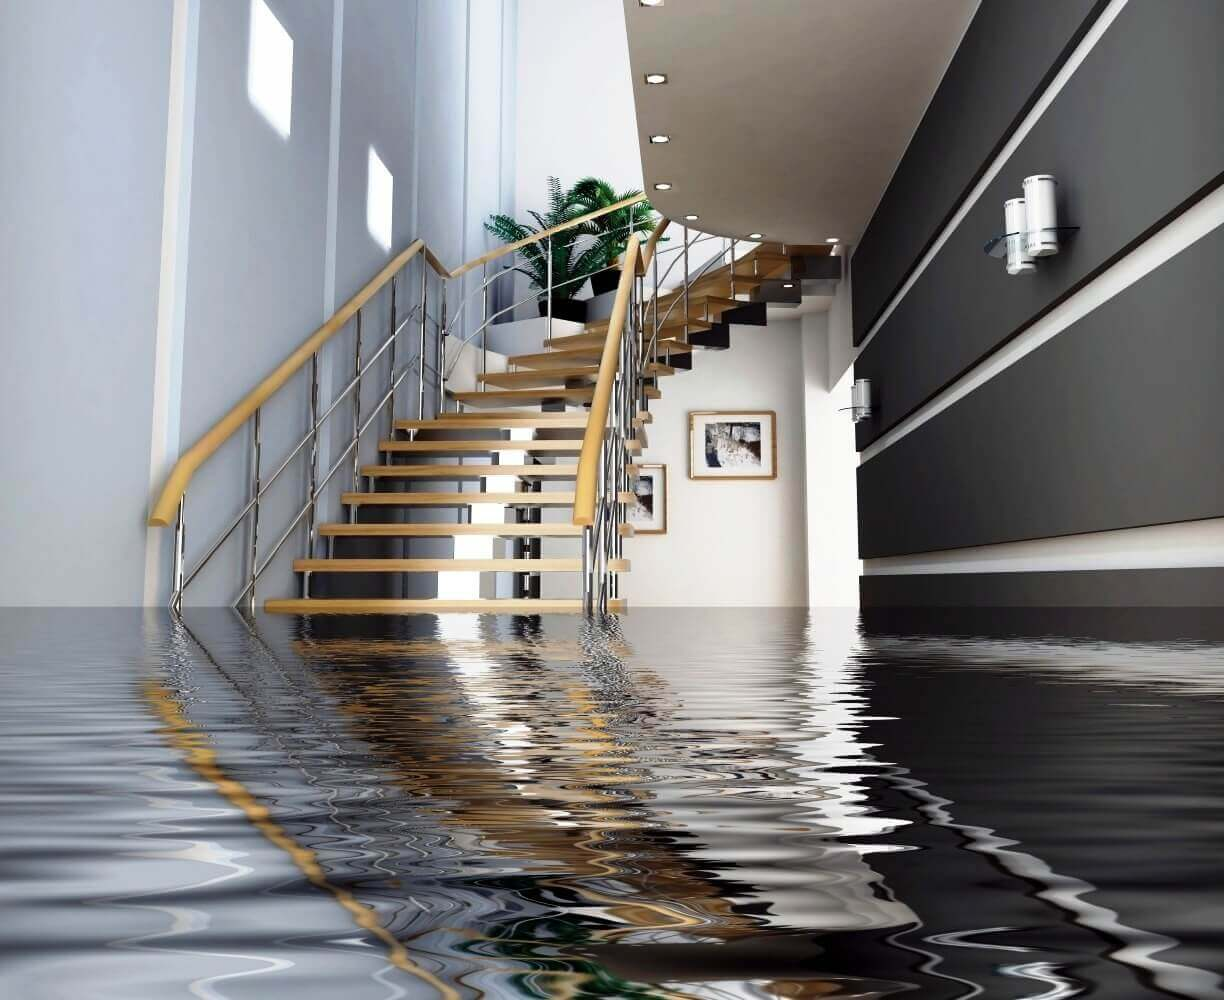 Professional Methods Used for Pumping Out a Flooded Basement